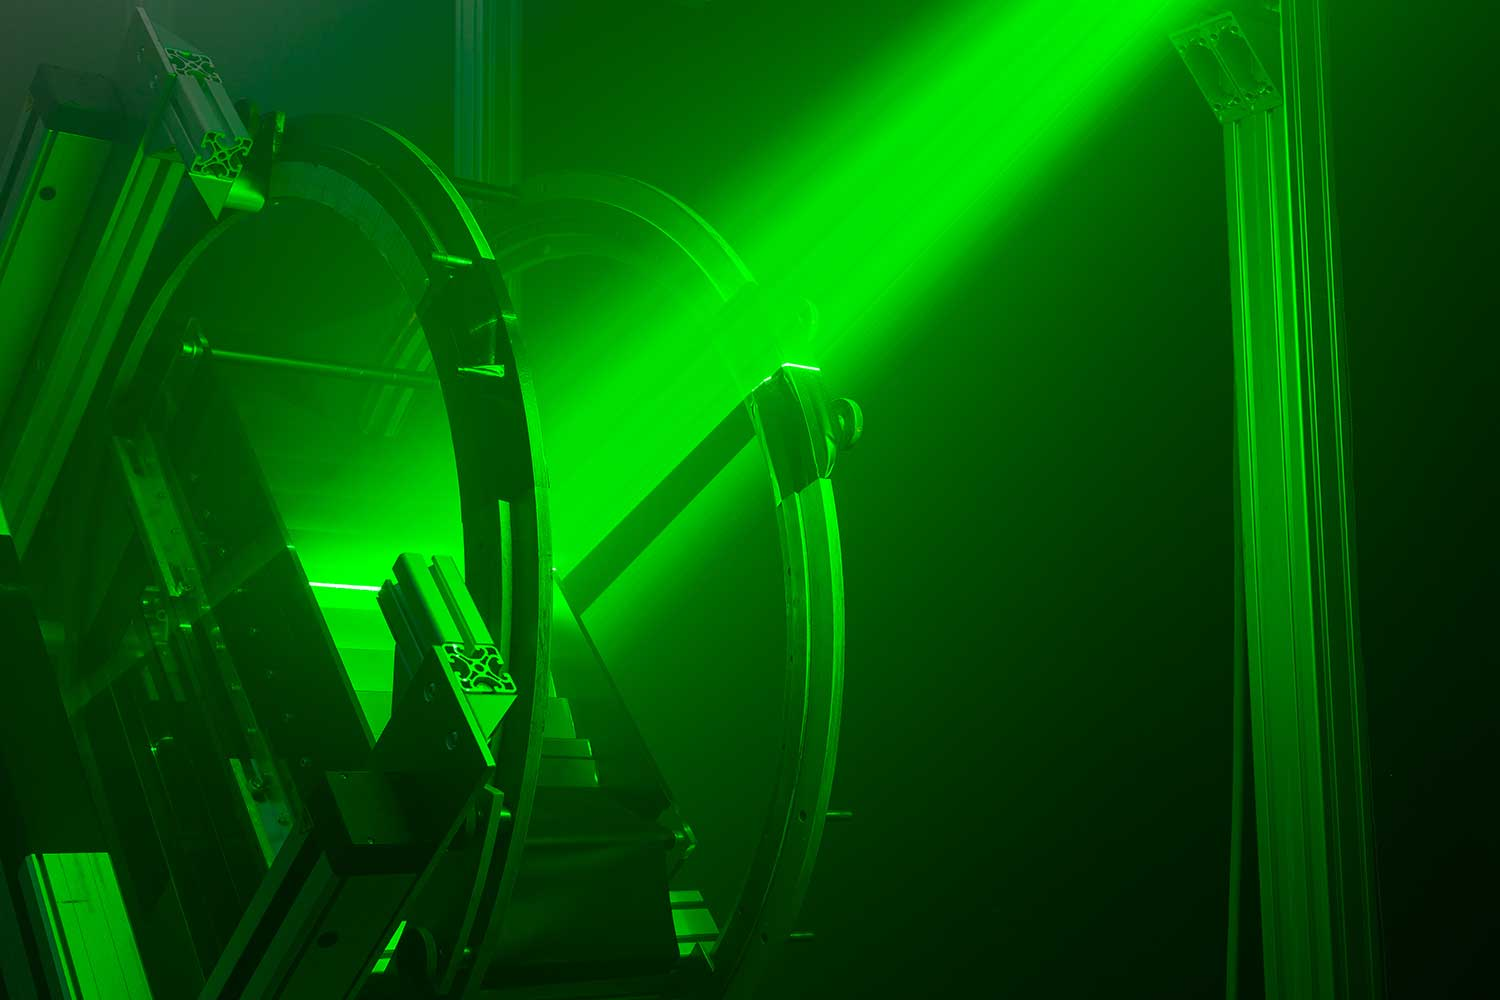 """Particle Image Velocimetry"" can be used for non-contact laser measurement of different types of airflow around aircraft. Credit: Sebastian Olschewski/TU Braunschweig"